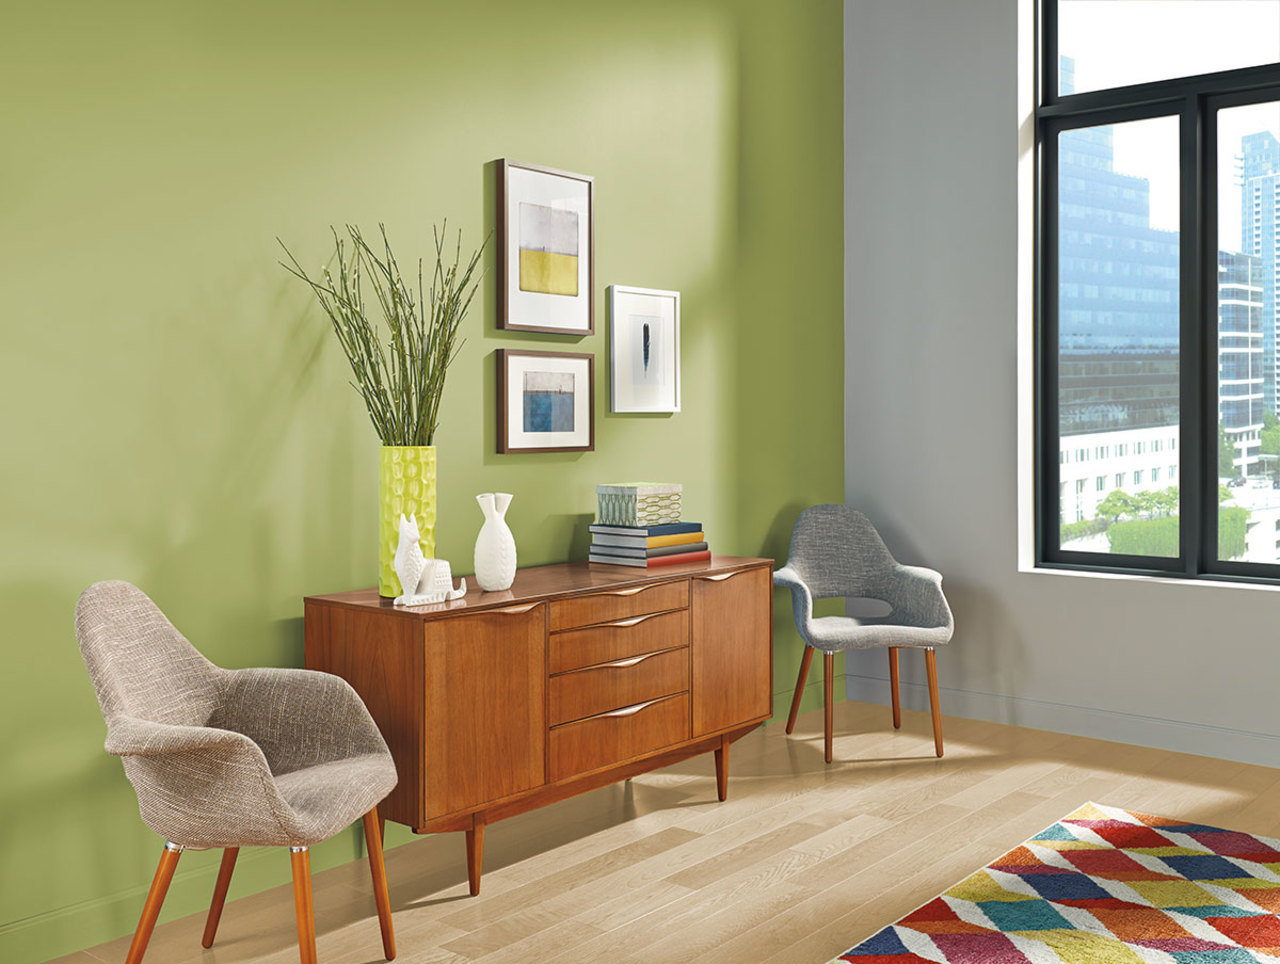 Green Accent Wall How To Choose The Right Paint Color For Your Home